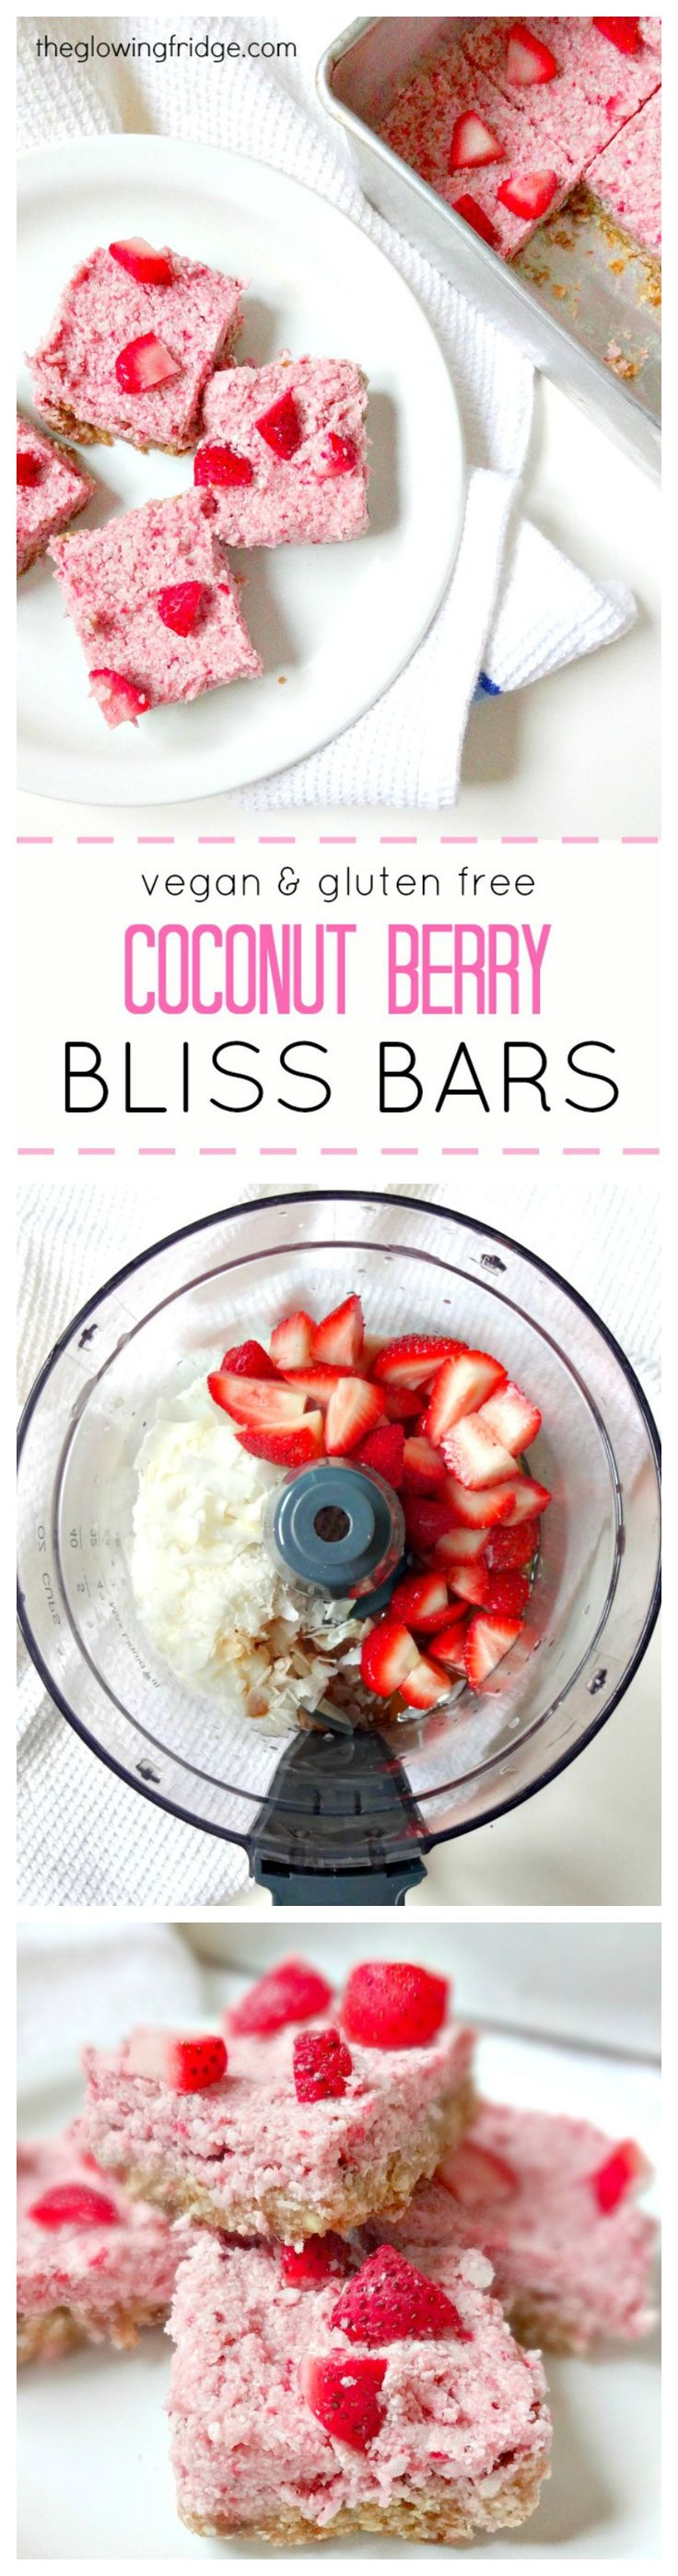 Vegan & Gluten Free 'Coconut Berry Bliss Bars' made with a date crust and strawberry coconut creamy filling. Heavenly and decadent healthy dessert bars. From The Glowing Fridge